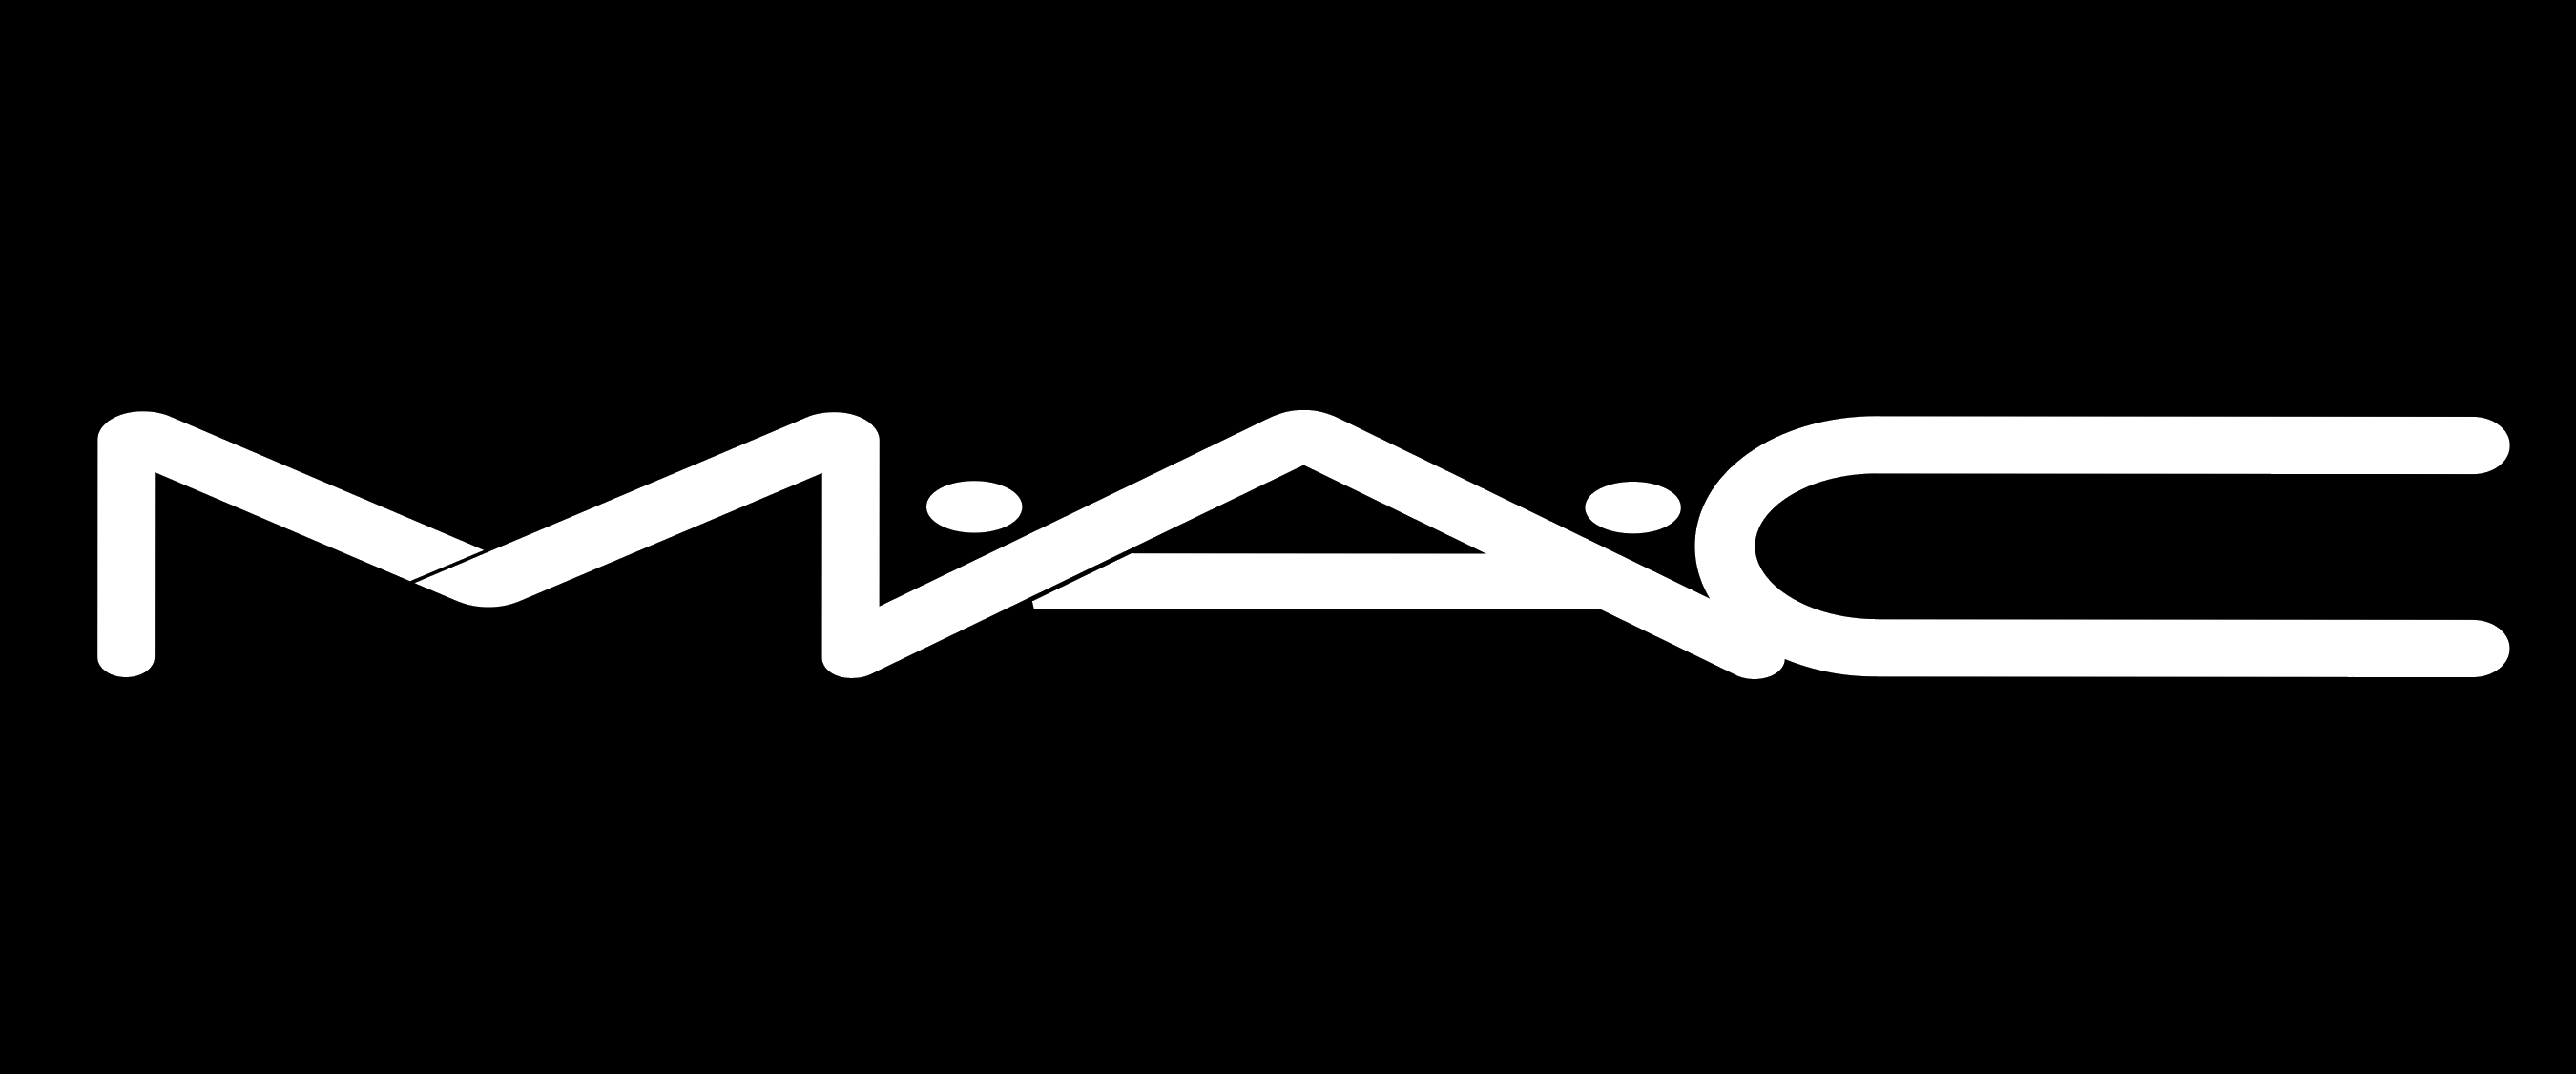 Mac logo black